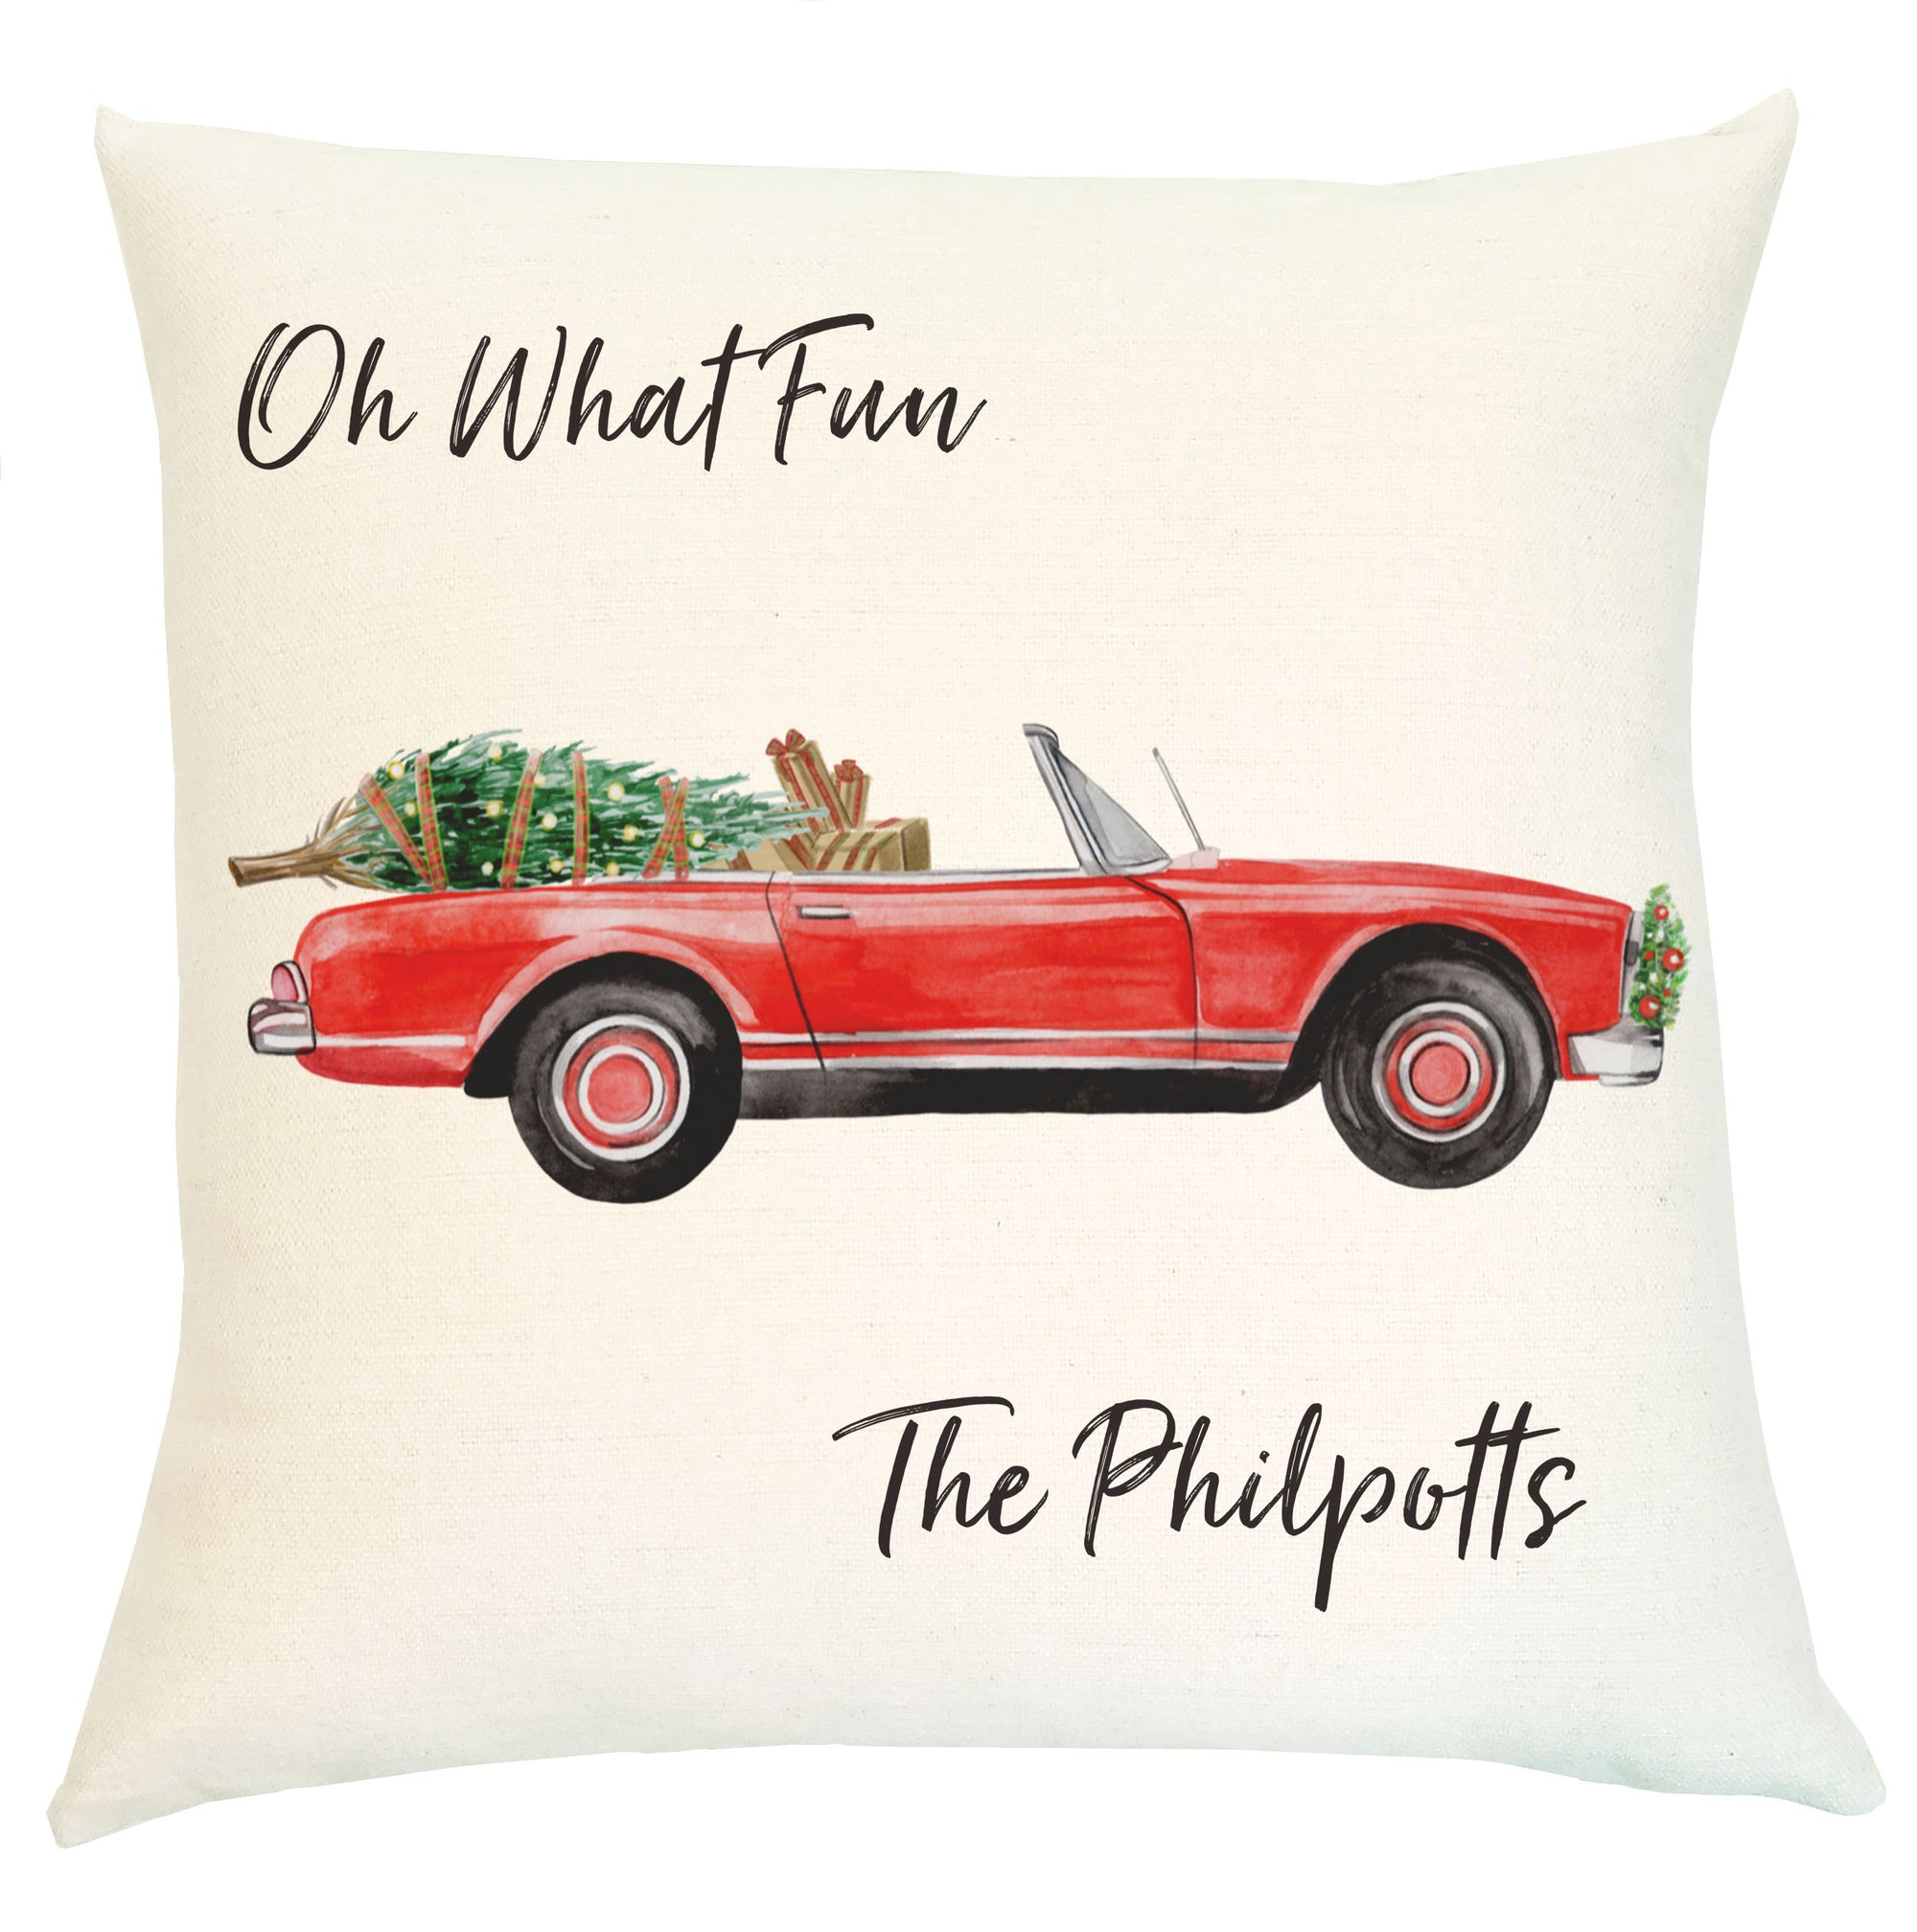 Pillow Personalized - Vintage Convertible Oh What Fun!